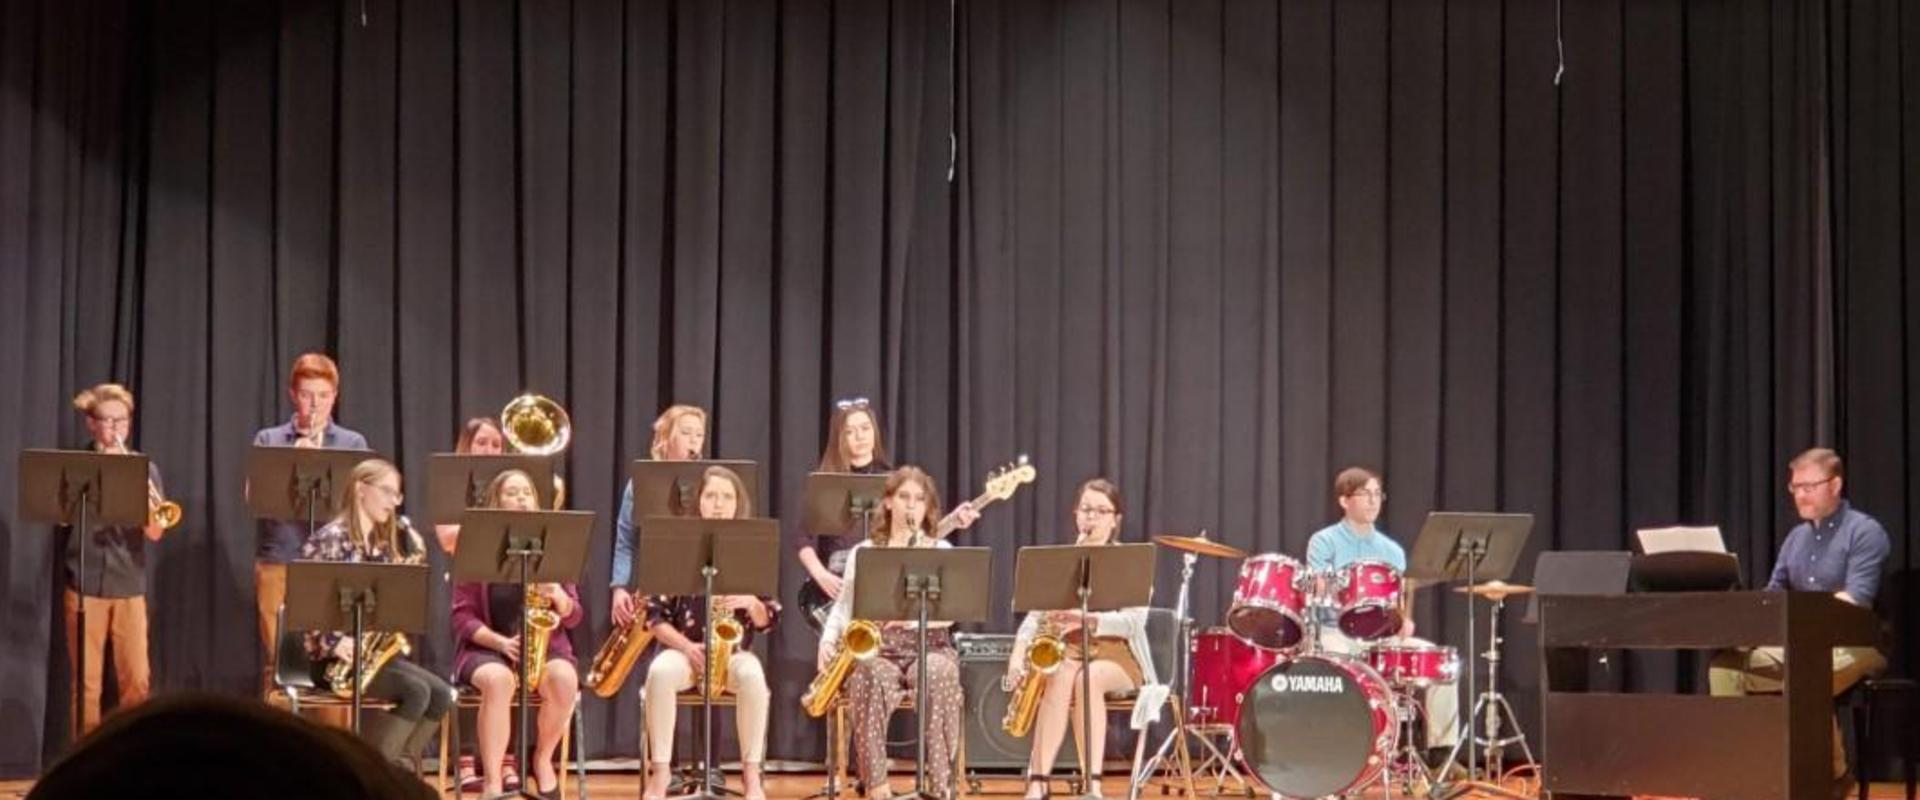 FASD Jr./Sr. HS Jazz Band at the Music Showcase on 3/7/20